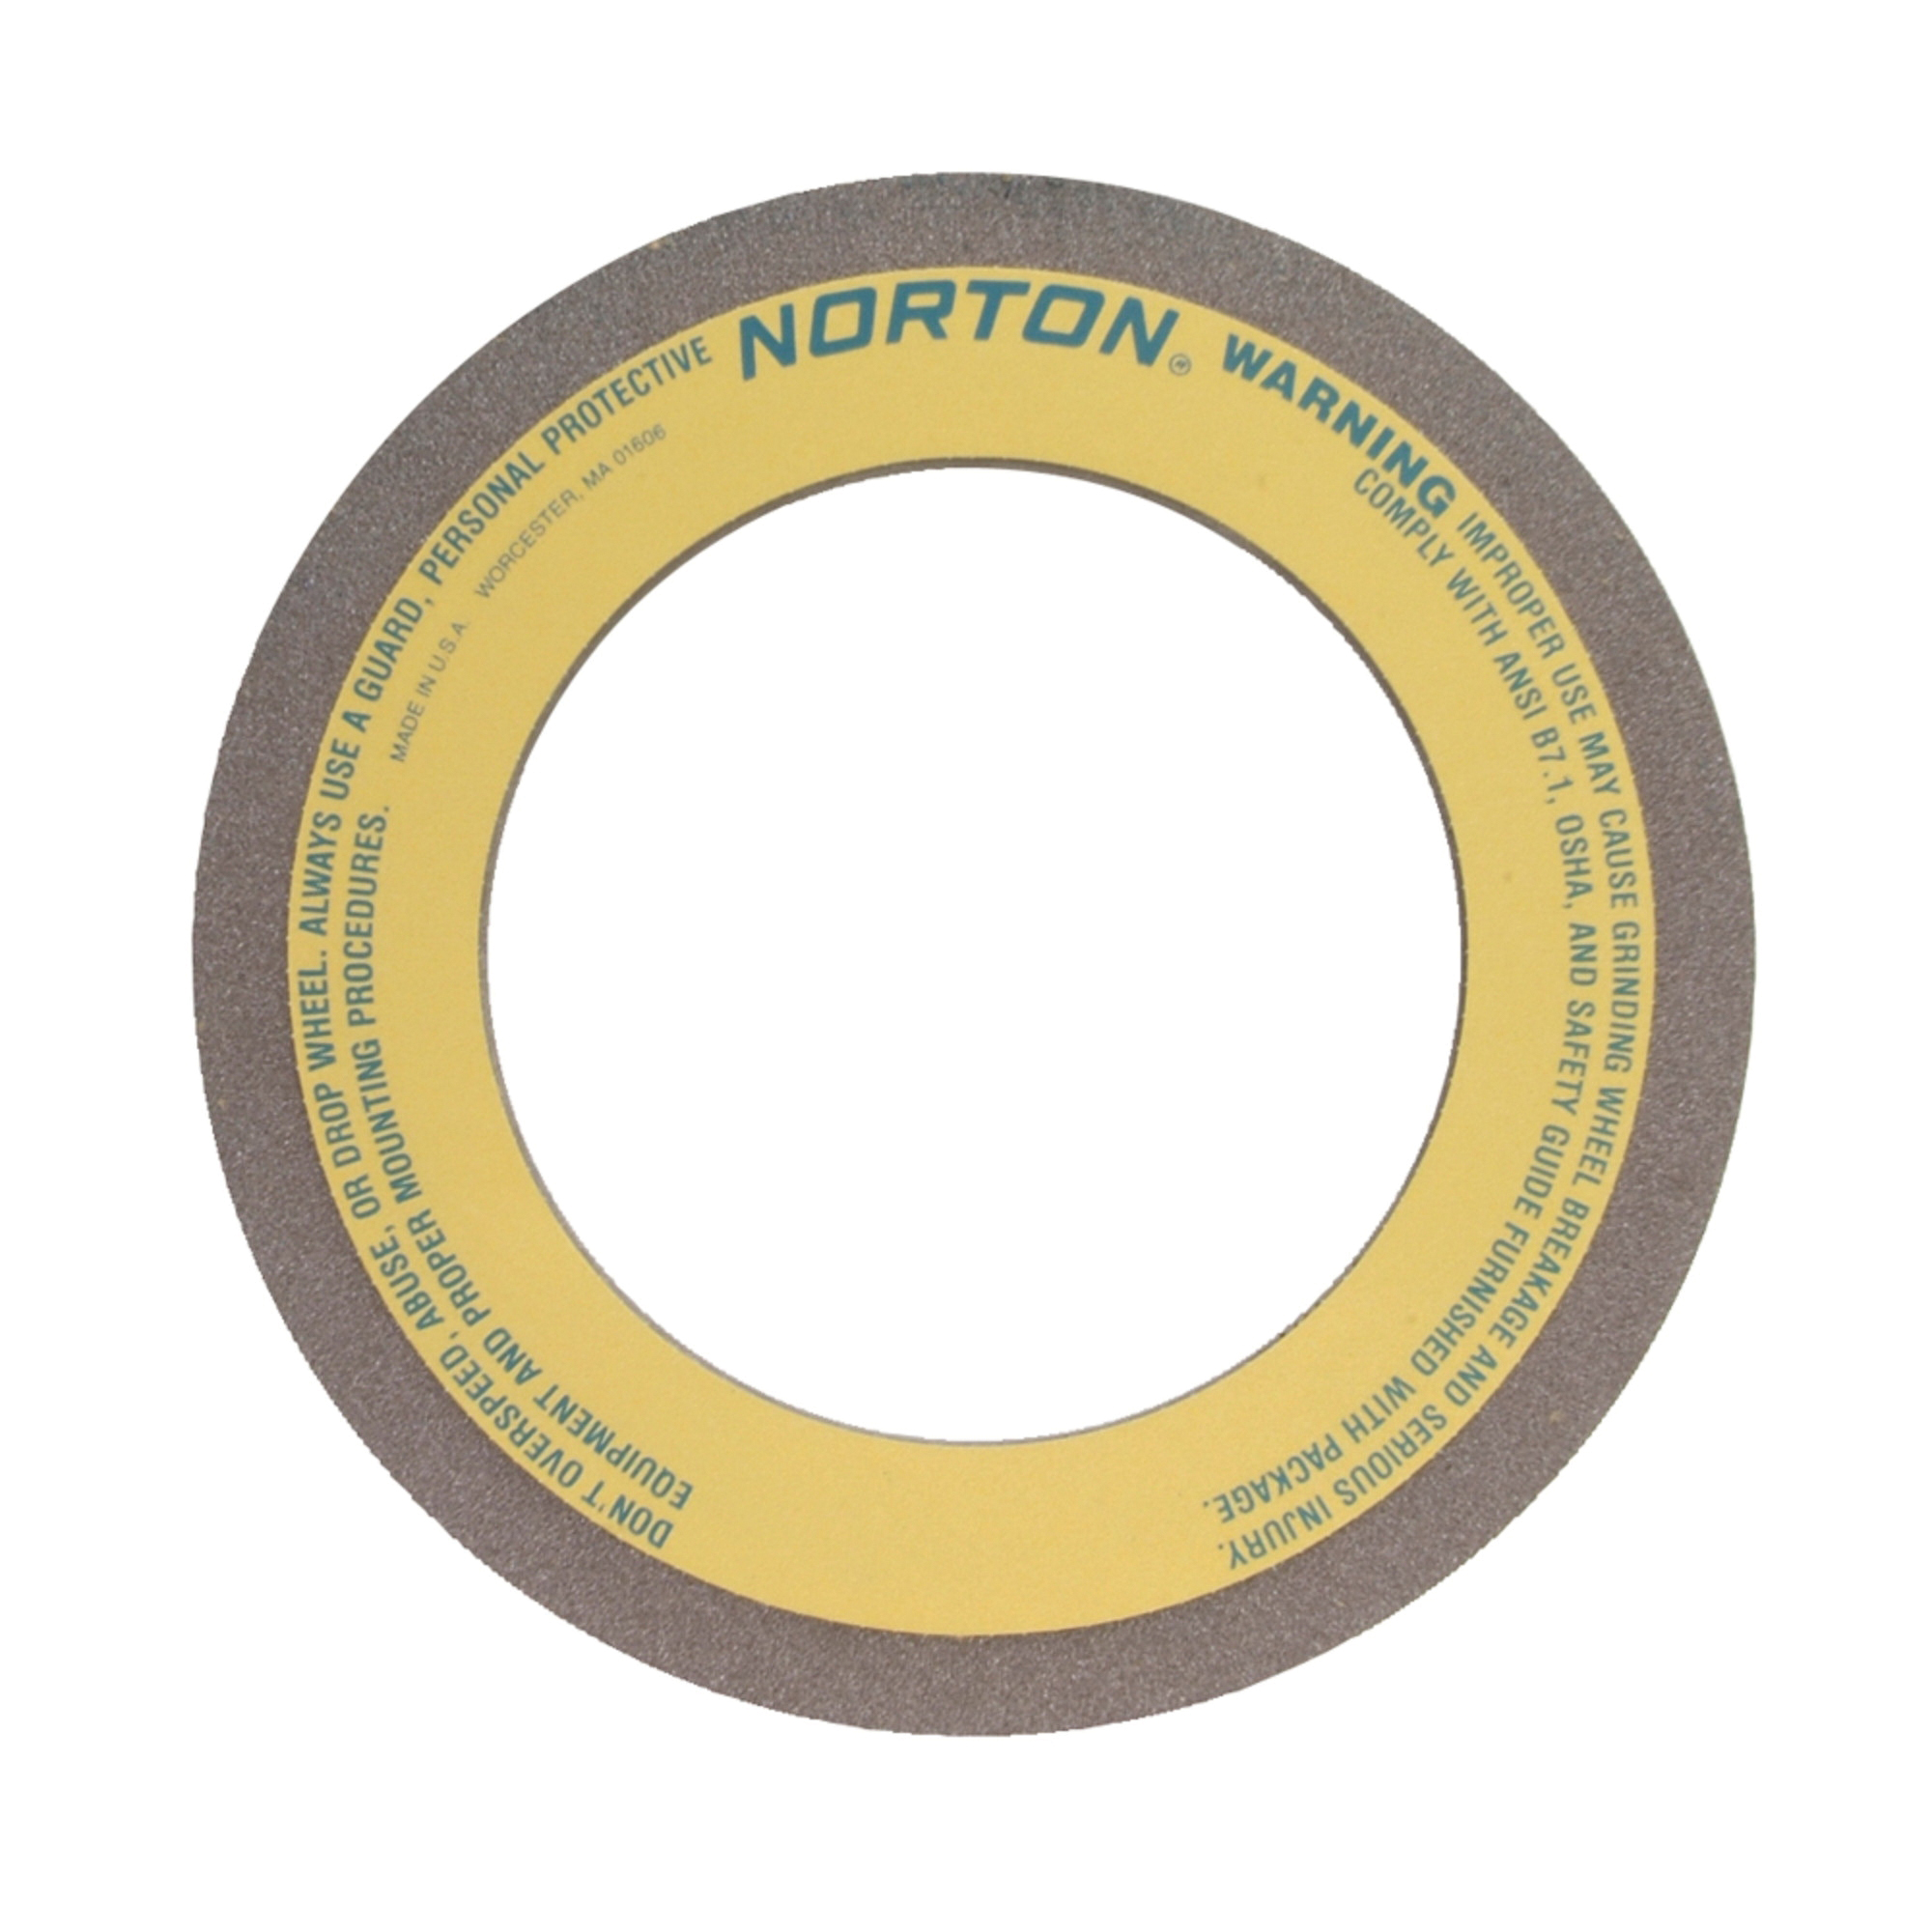 Norton® 66253465001 57A Centerless Grinding Wheel, 16 in Dia x 4 in THK, 10 in Center Hole, 80 Grit, Aluminum Oxide Abrasive